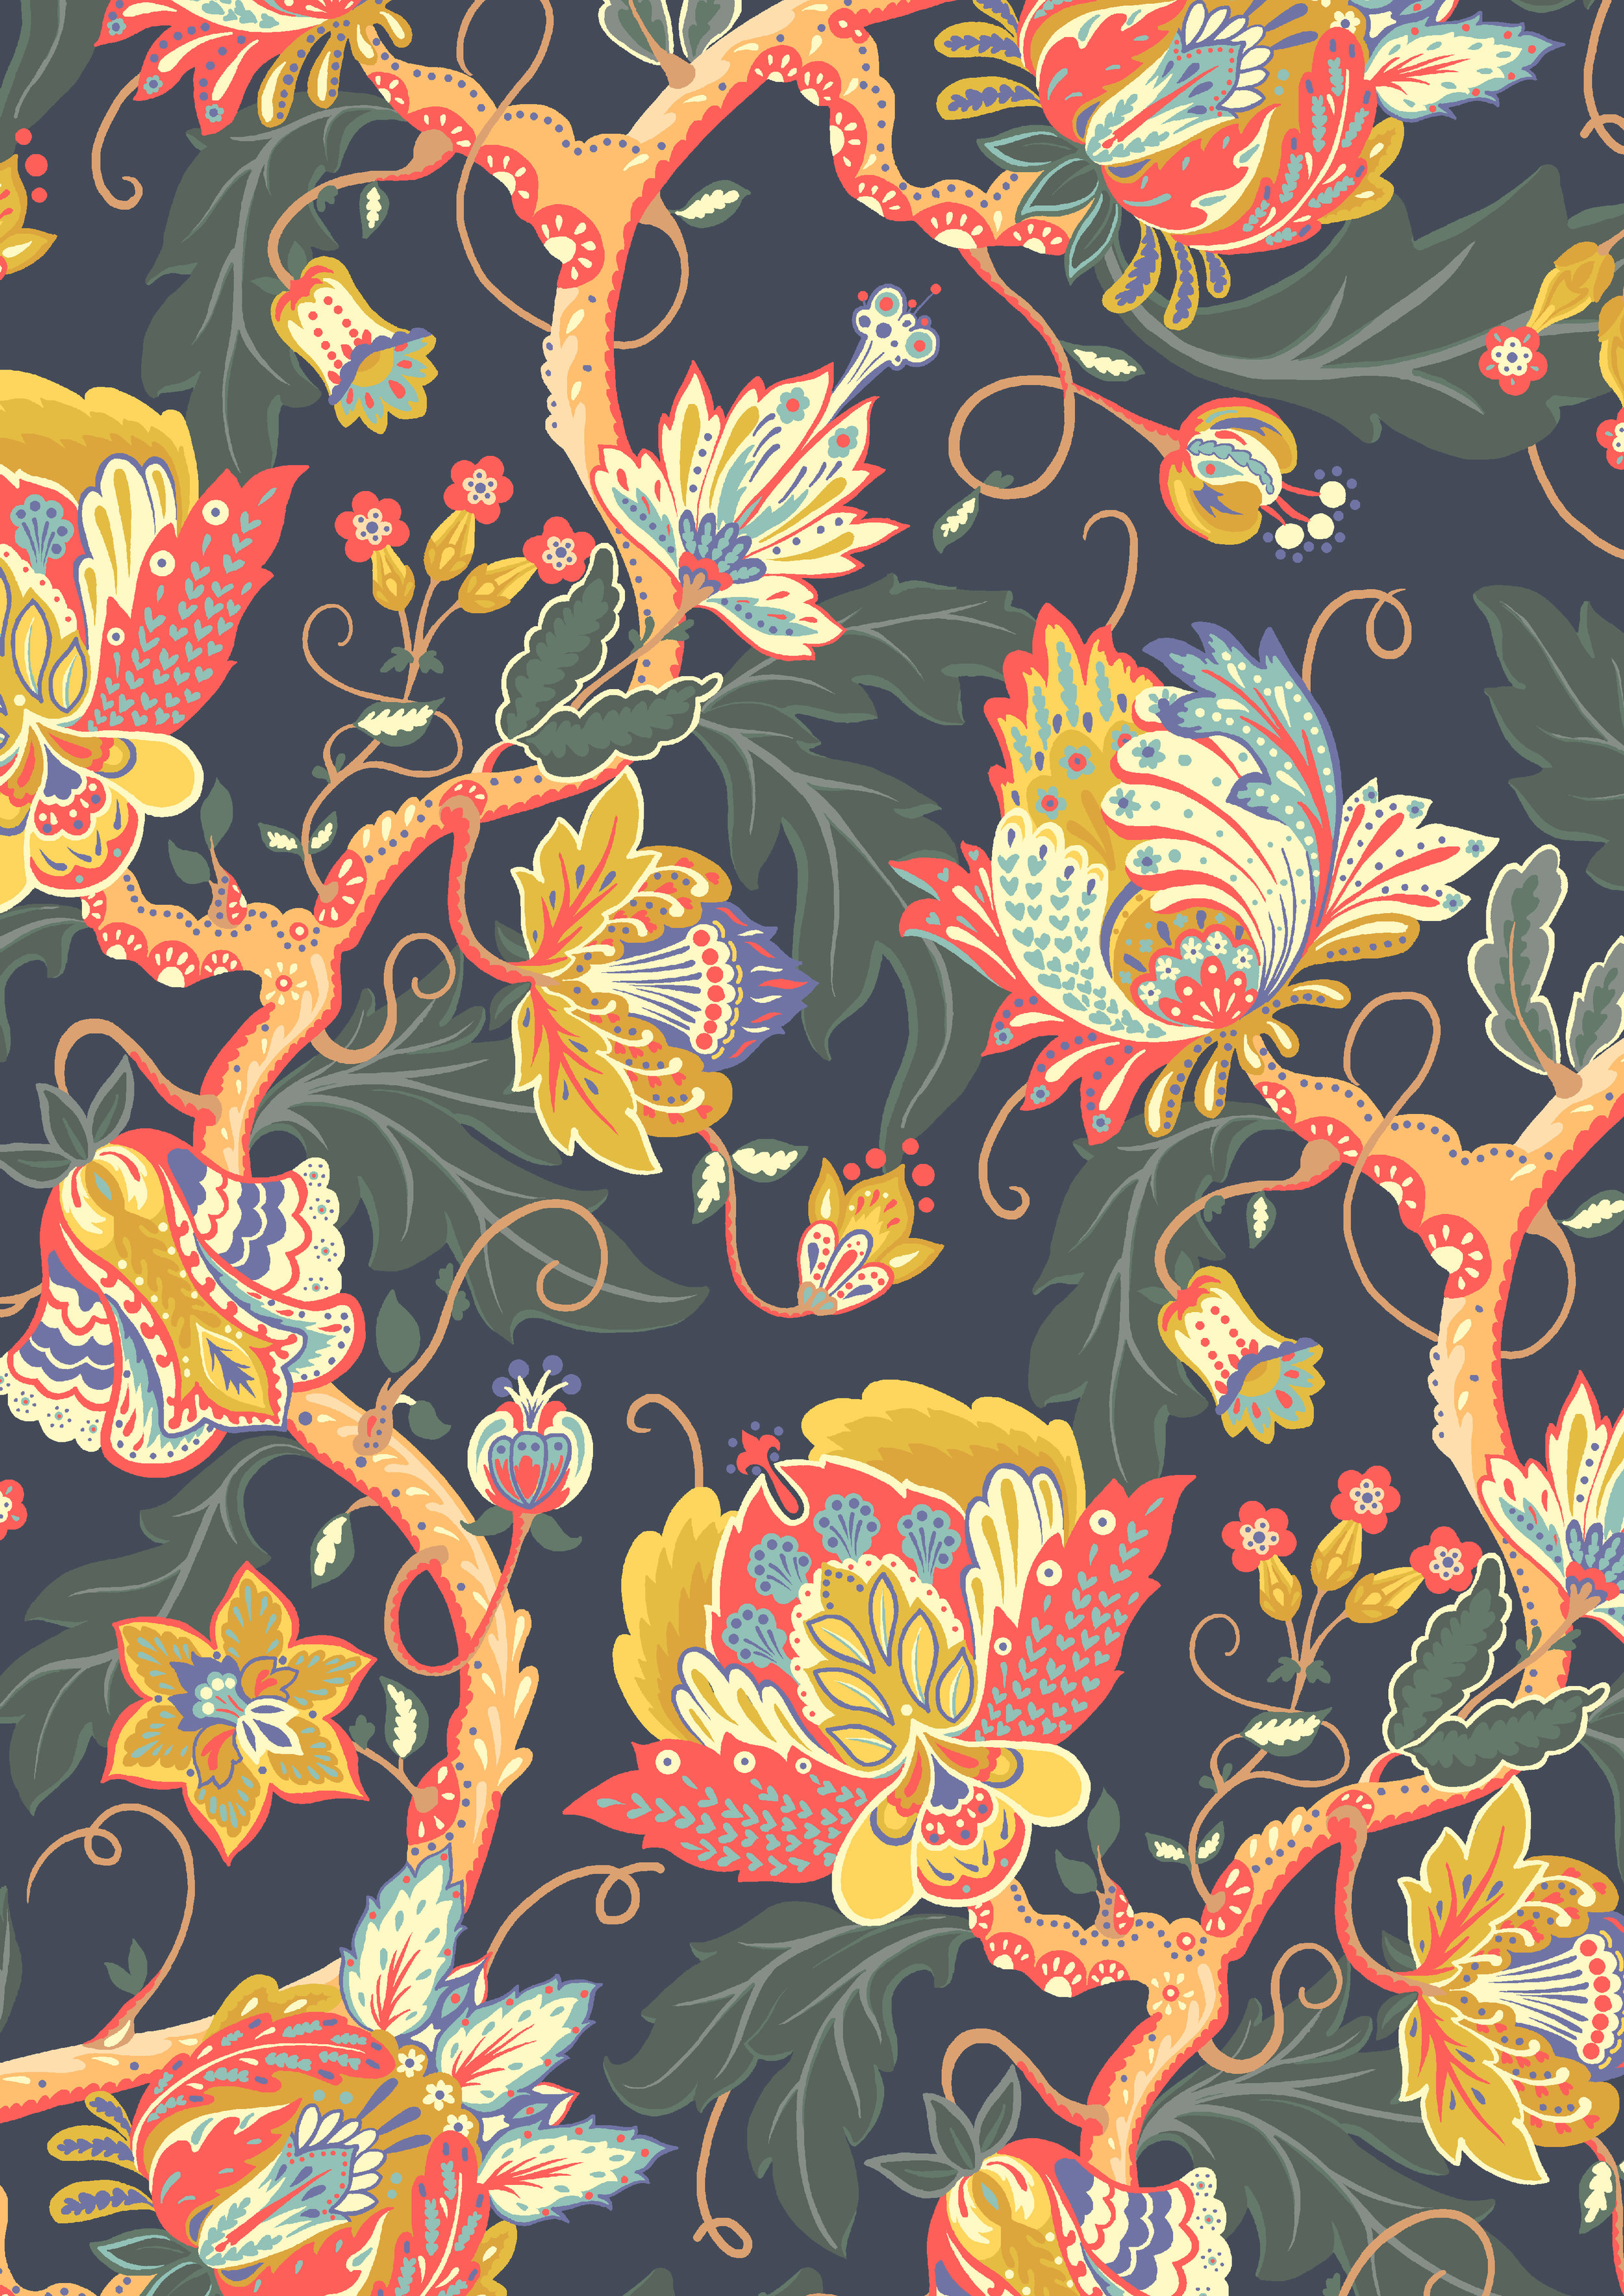 Weavers Bloom - Beyond the Silk Road - Liberty Fabrics 2016